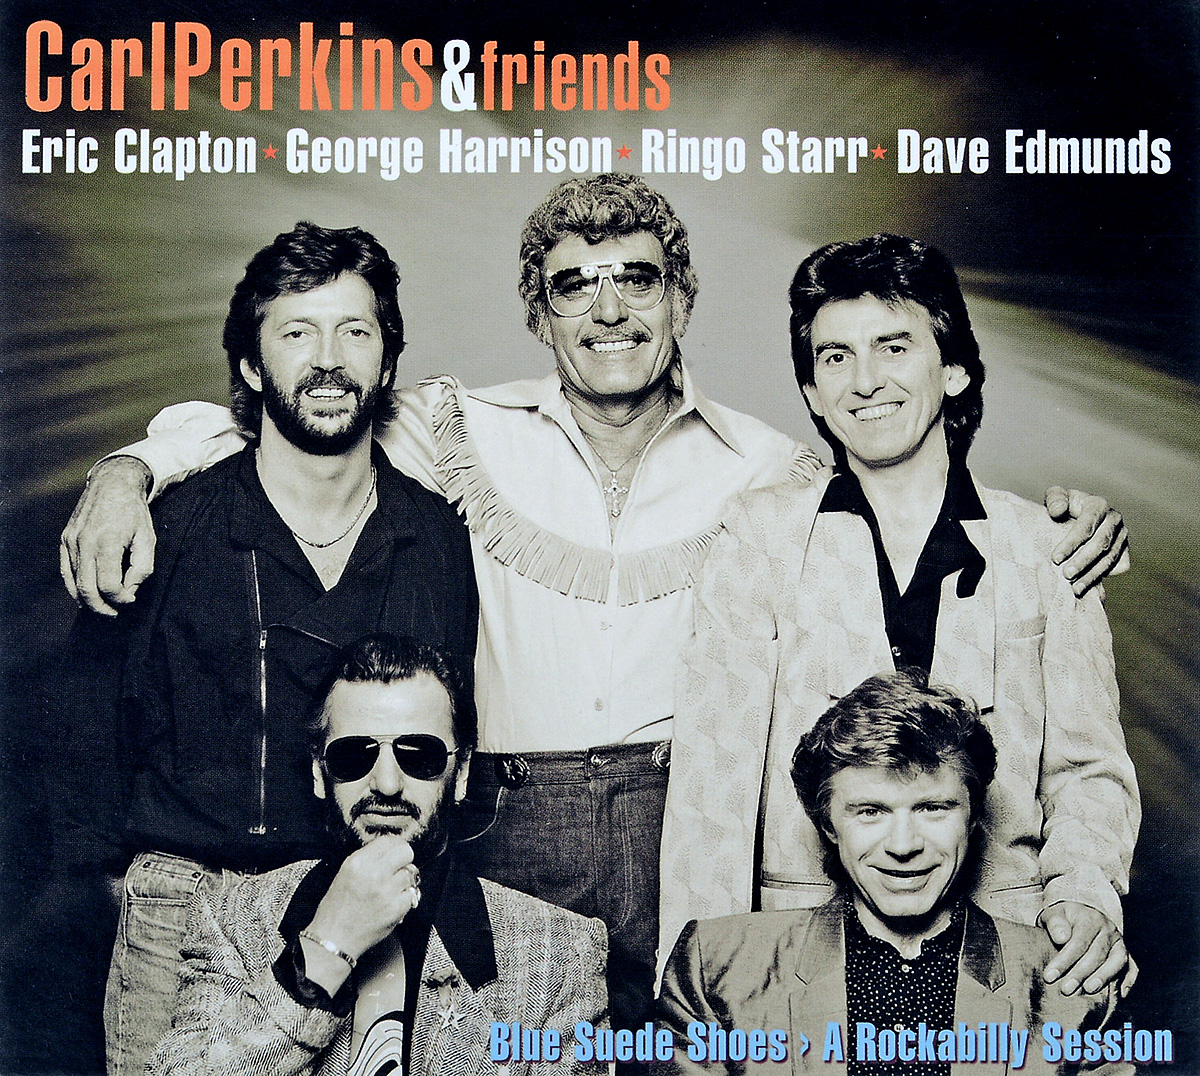 Carl Perkins & Friends: Blue Suede Shoes: A Rockabilly Session: 30th Anniversary Edition (CD + DVD) платья replay платье